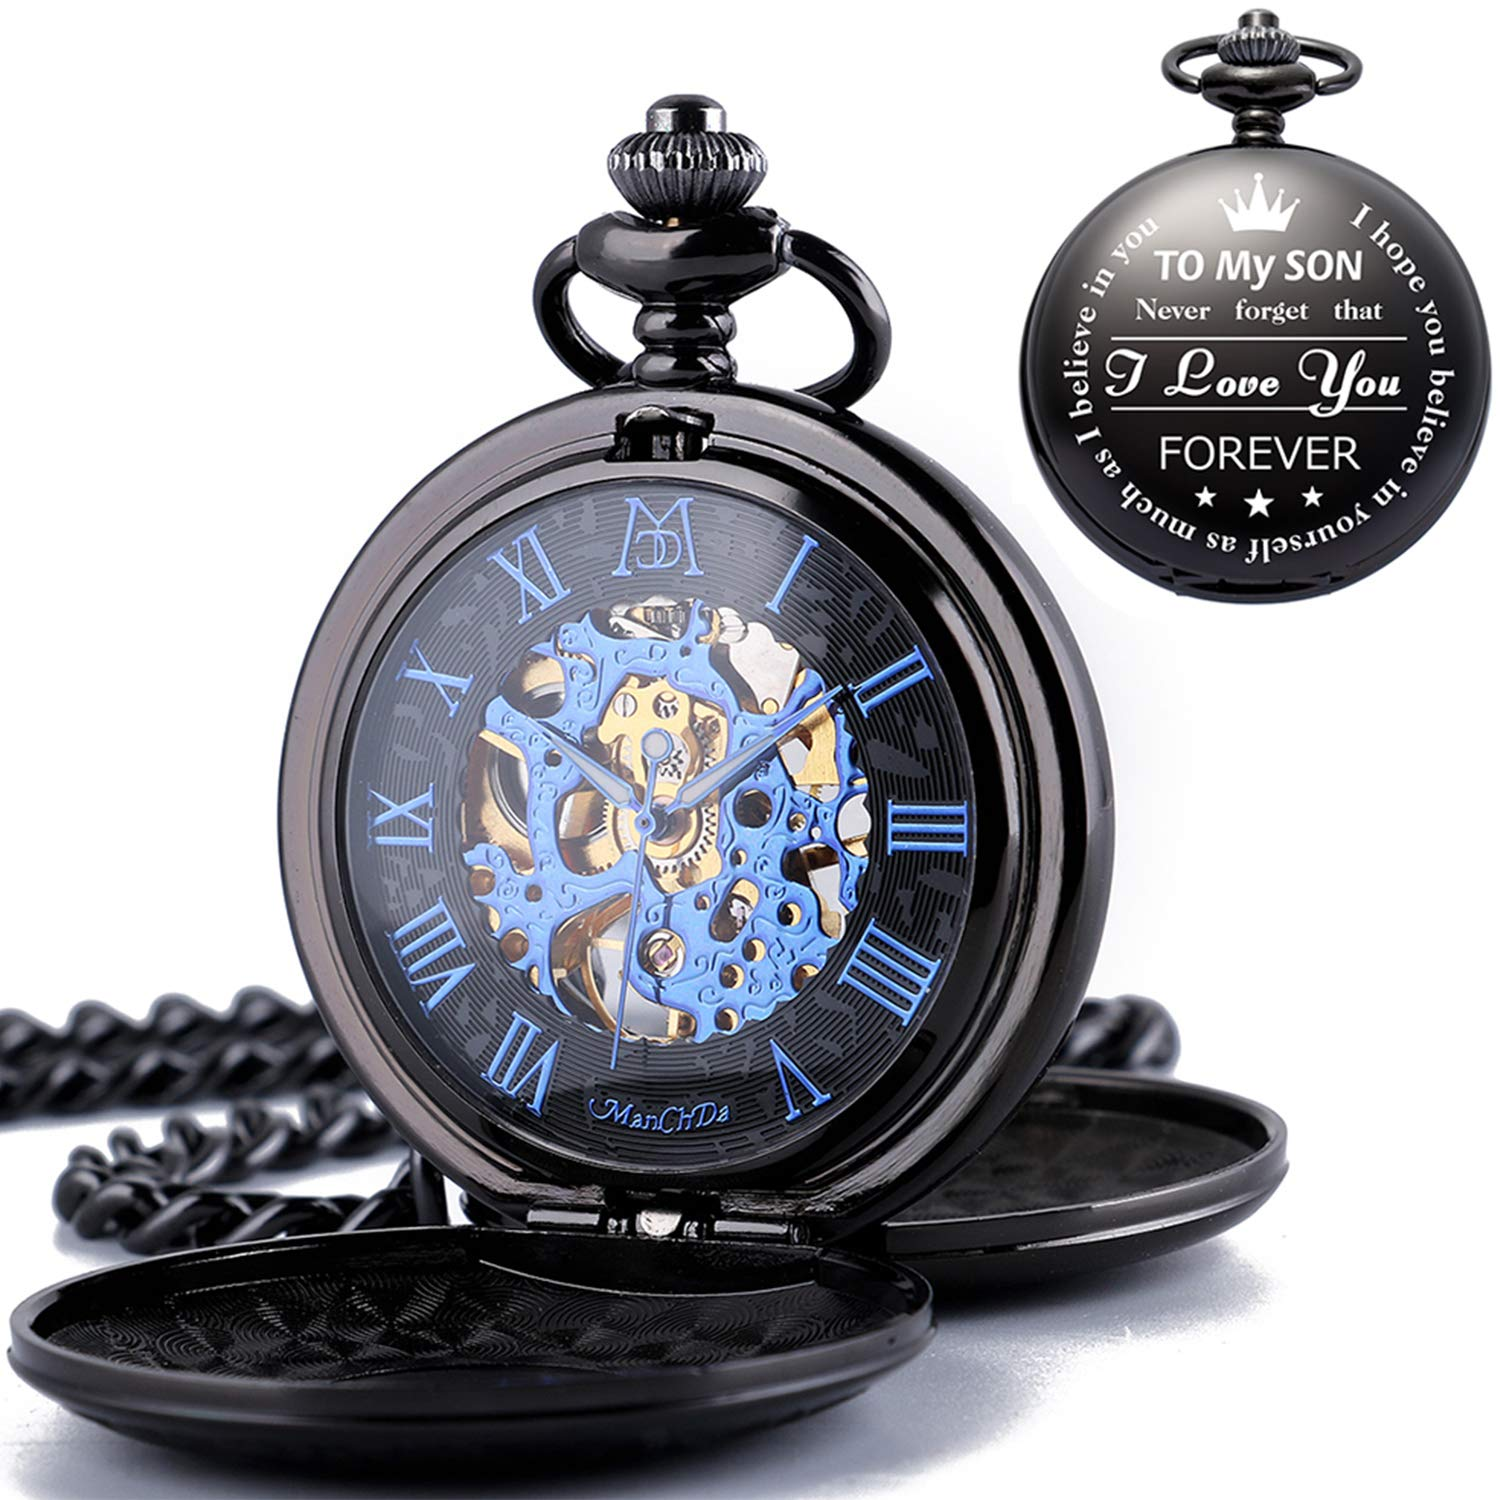 ManChDa Mechanical to My Son Double Cover Roman Numerals Dial Skeleton Personalized Engraved Pocket Watches with Gift Box and Chain Customized Customization Custom Engraving Gift for Son by ManChDa